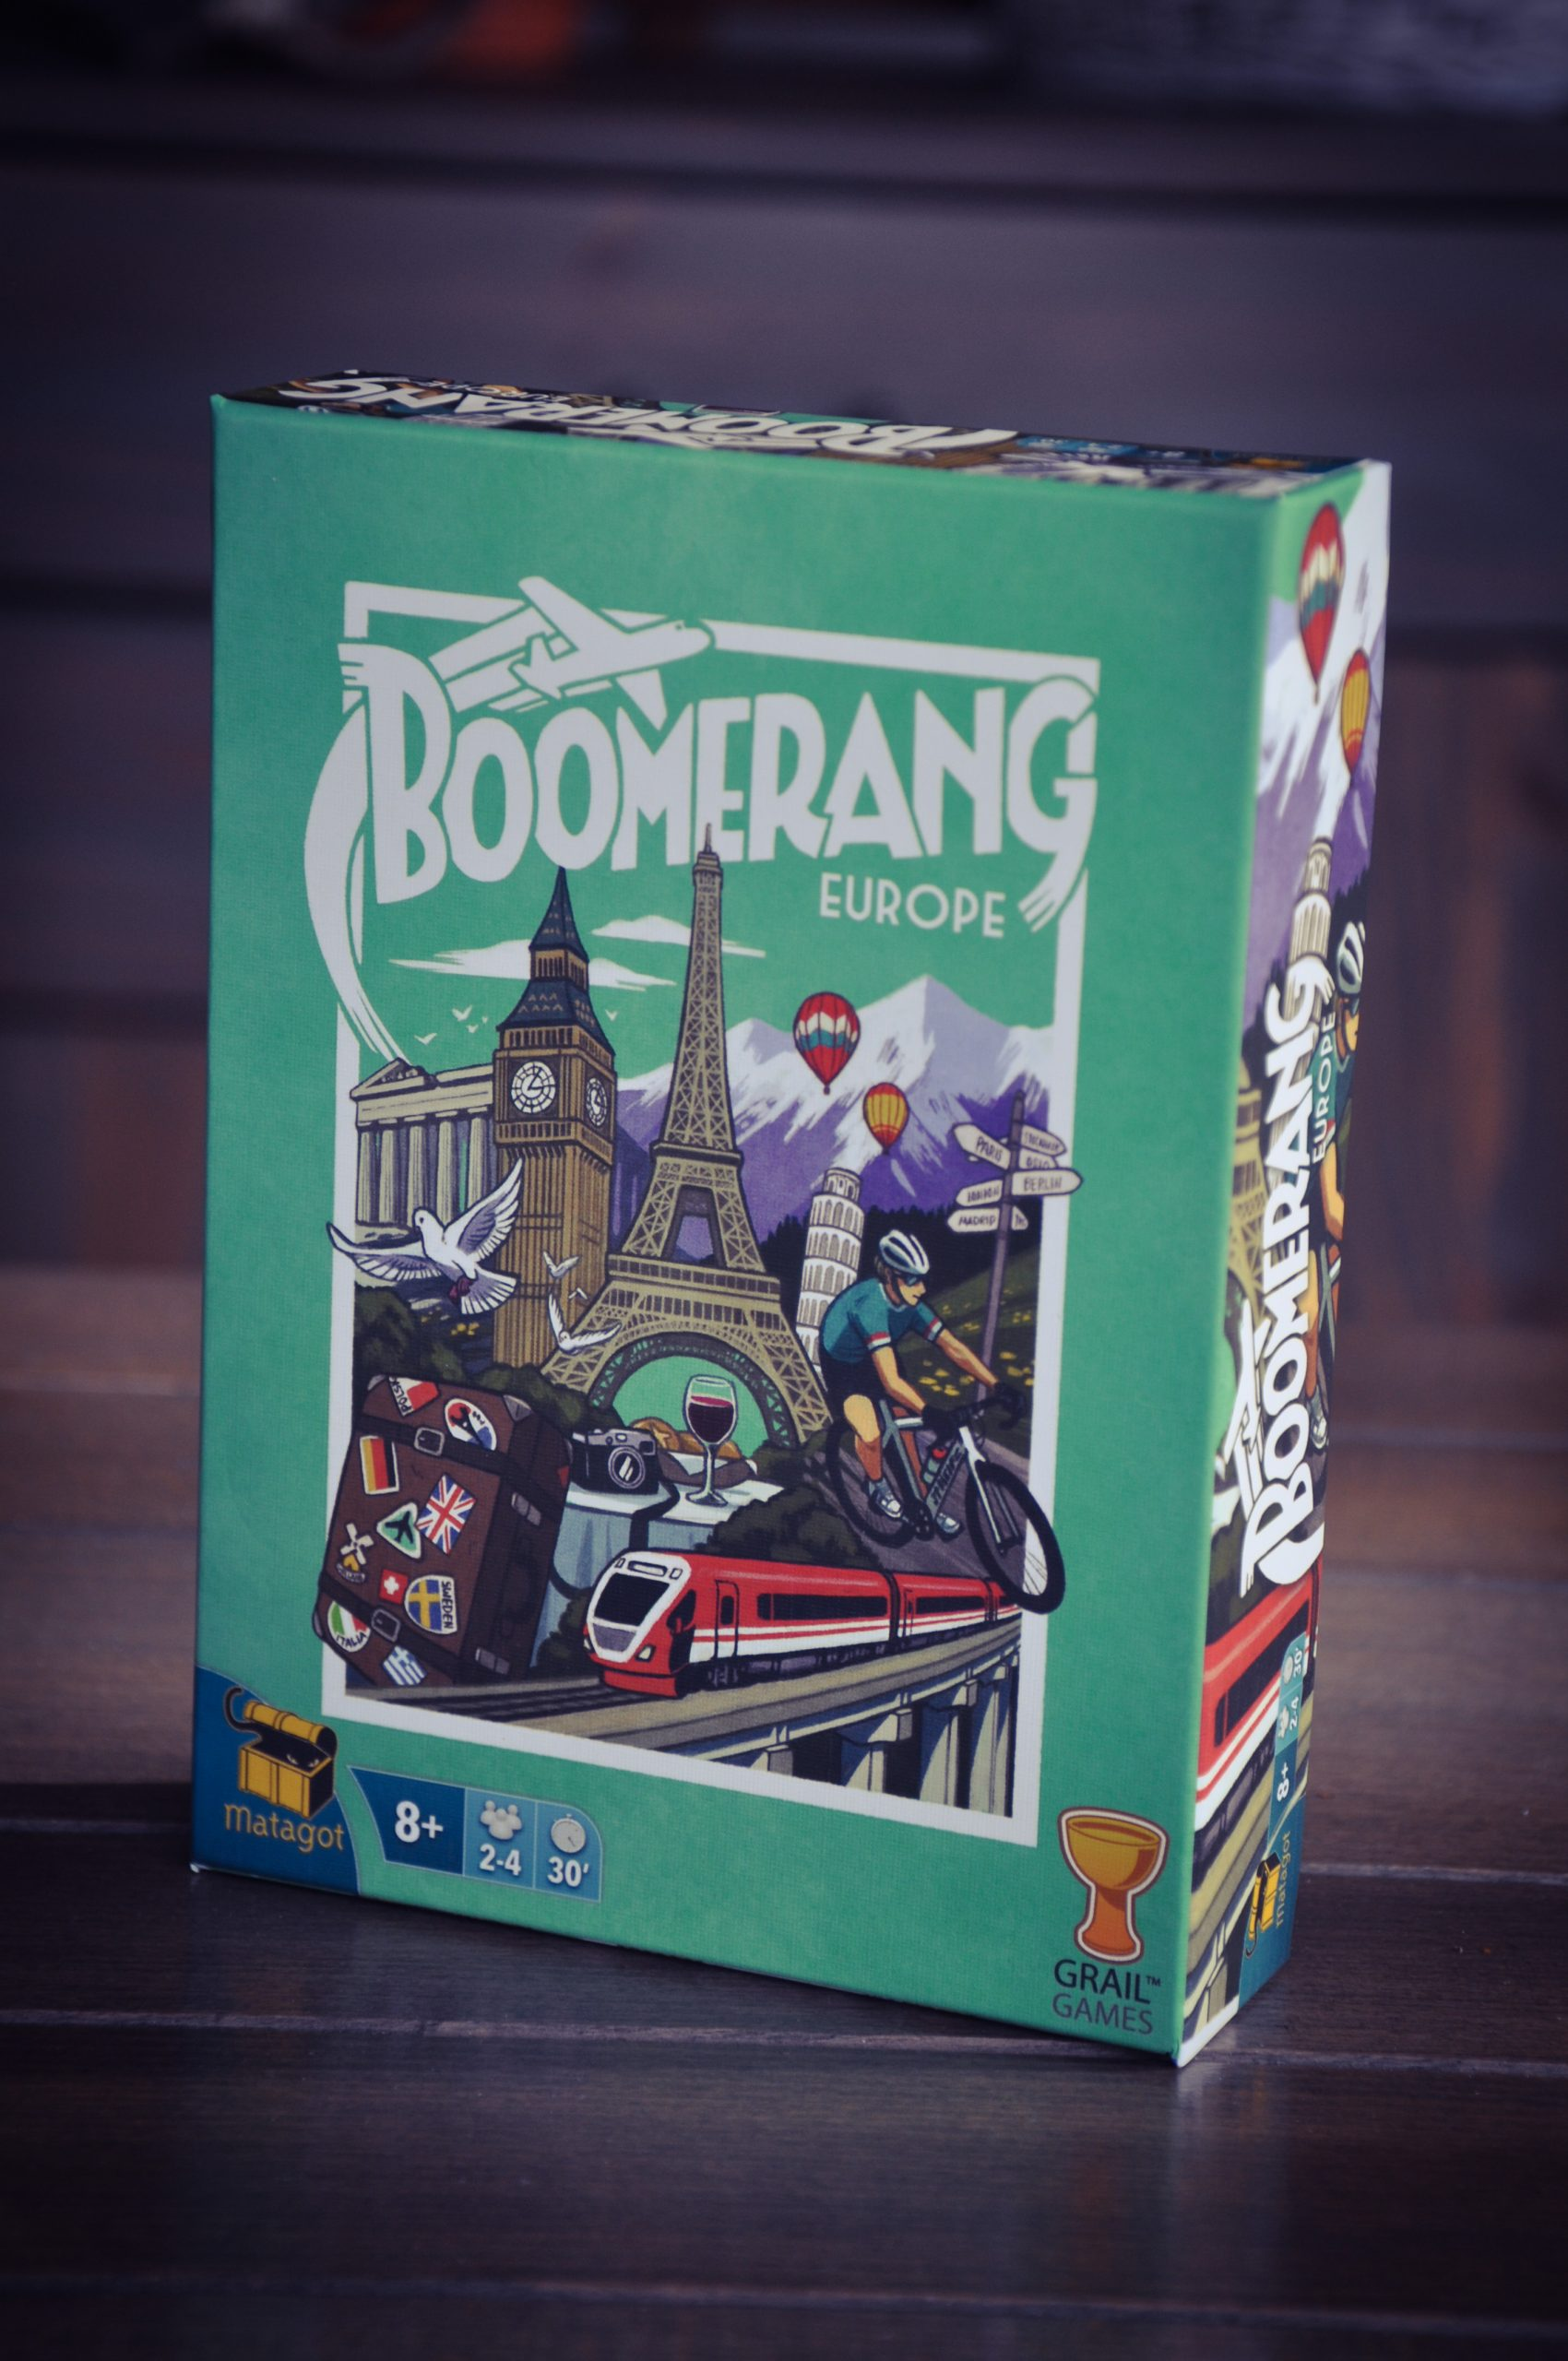 [Test] Boomerang USA et Europe, du draft n' write pour touristes collectionneurs